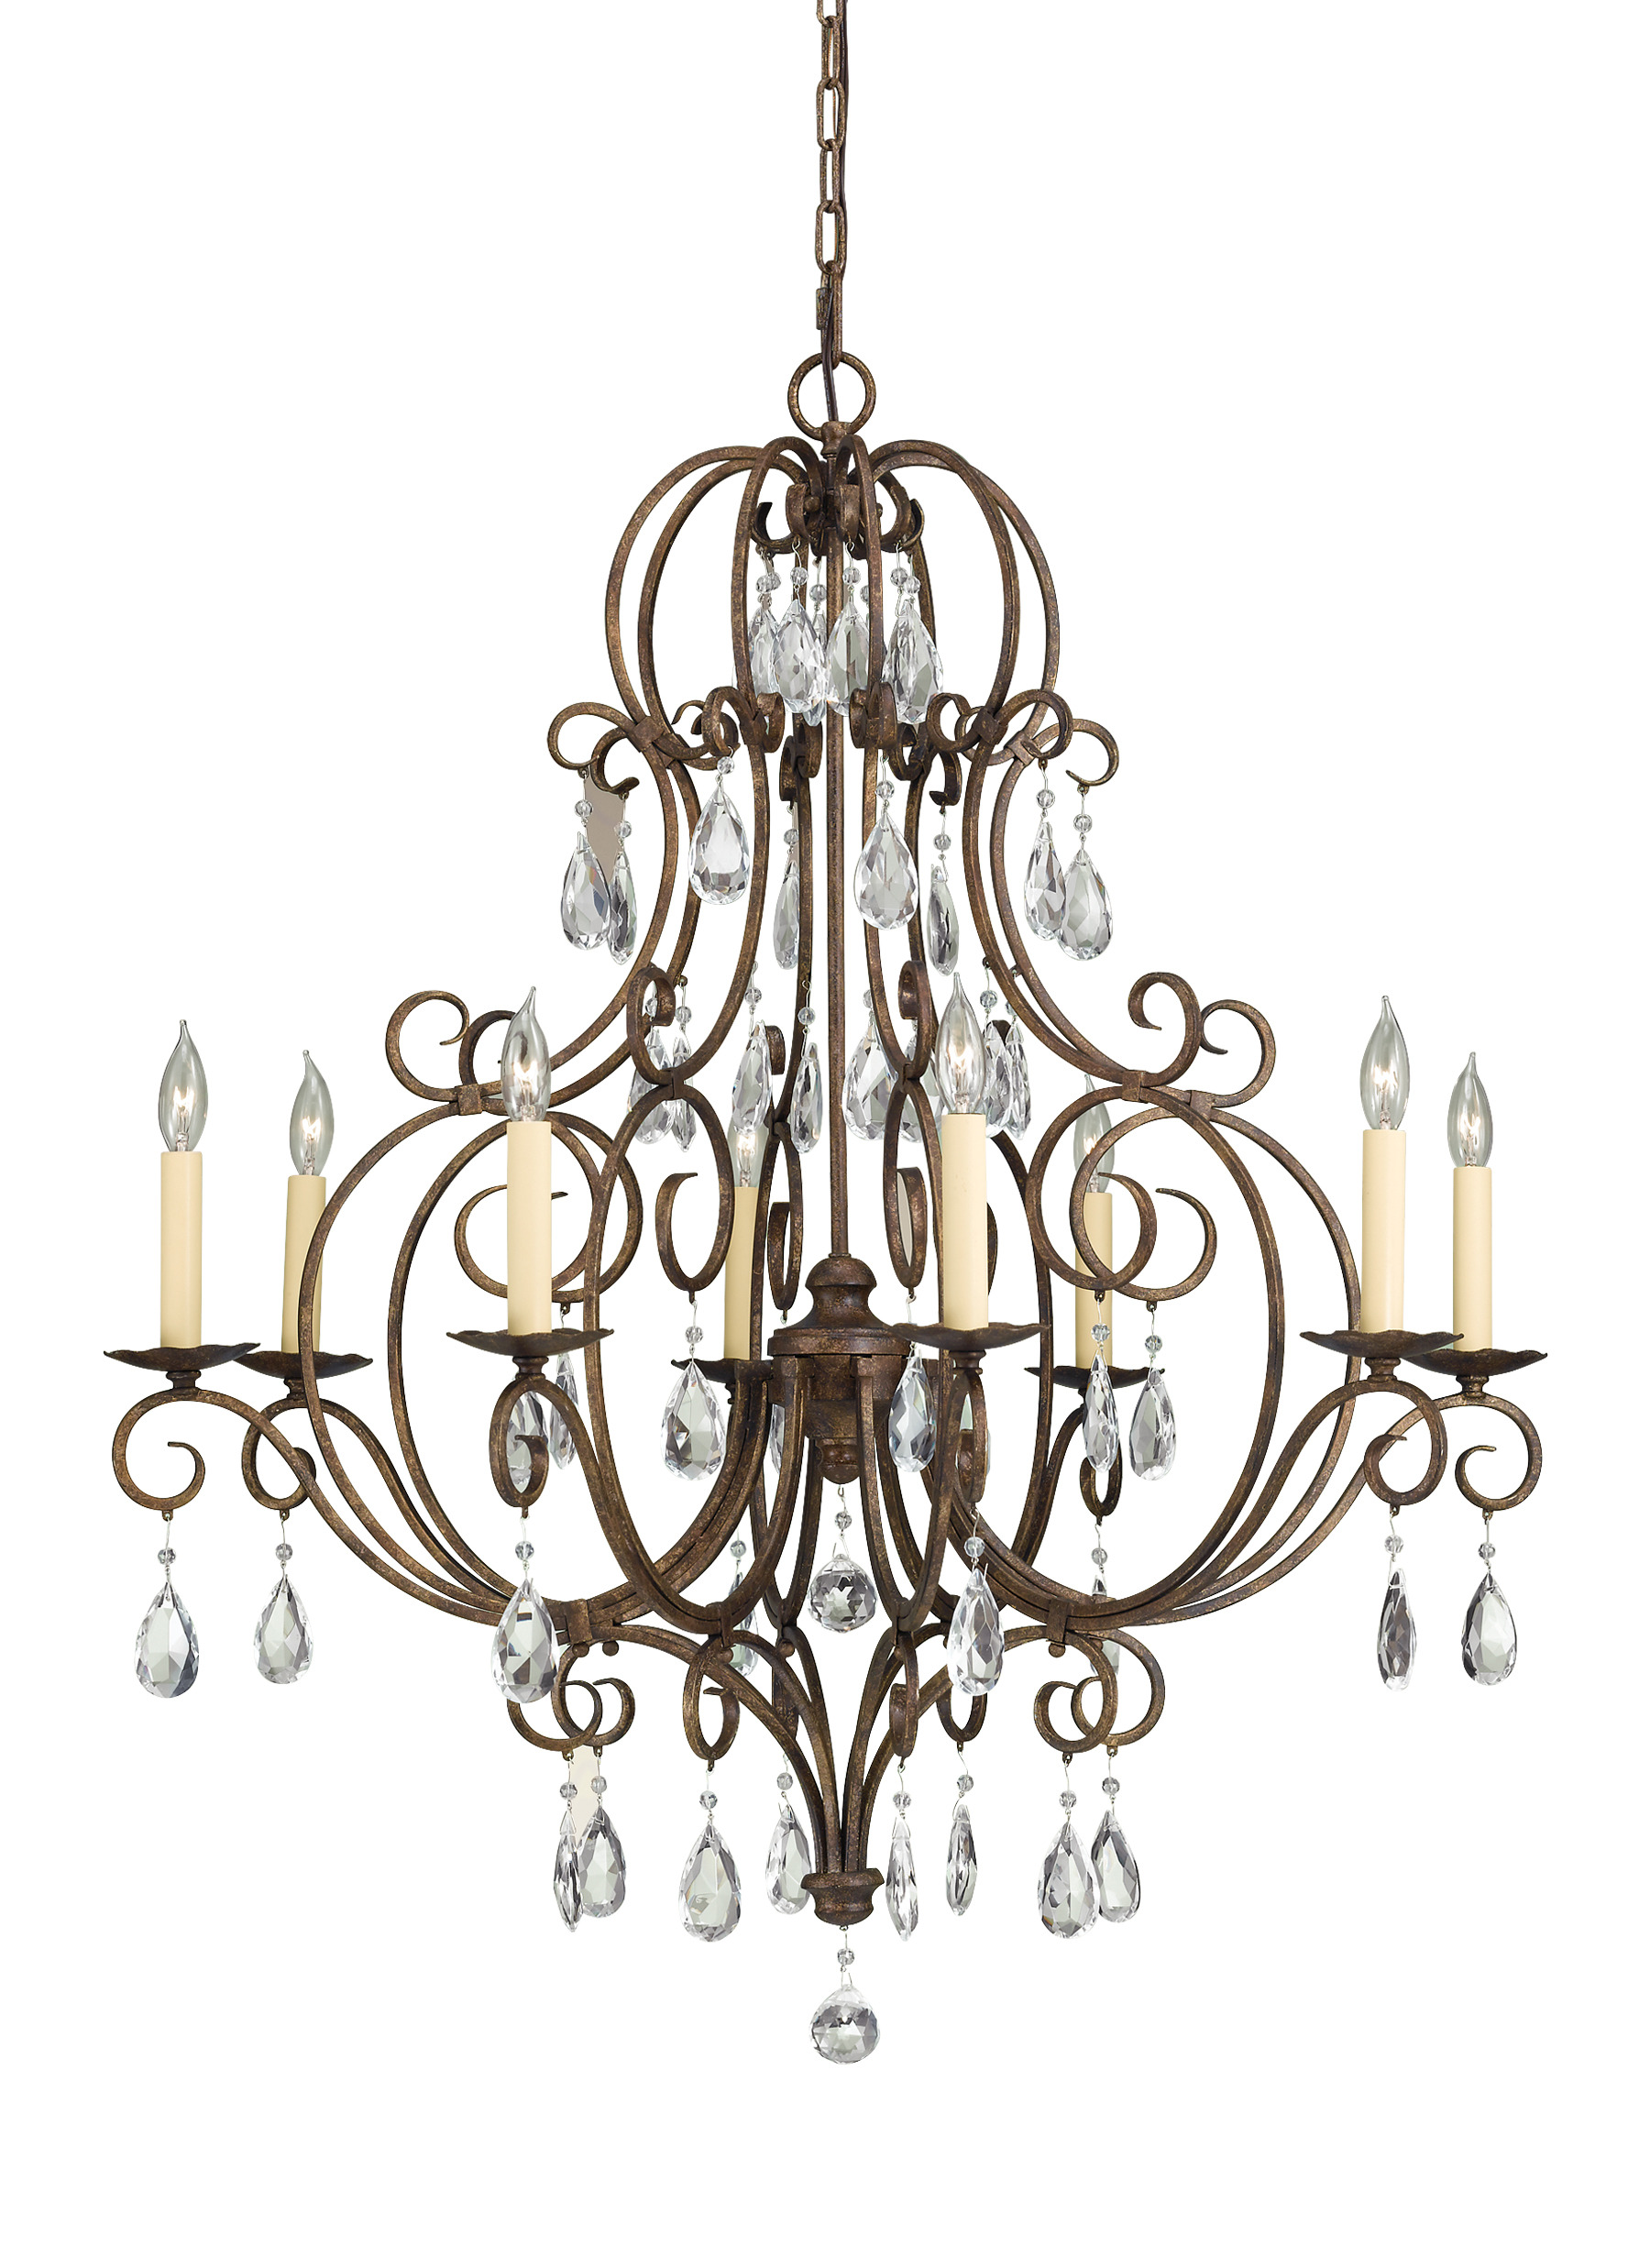 Chateau from feiss chateau collection 8 light single tier chandelier aloadofball Gallery